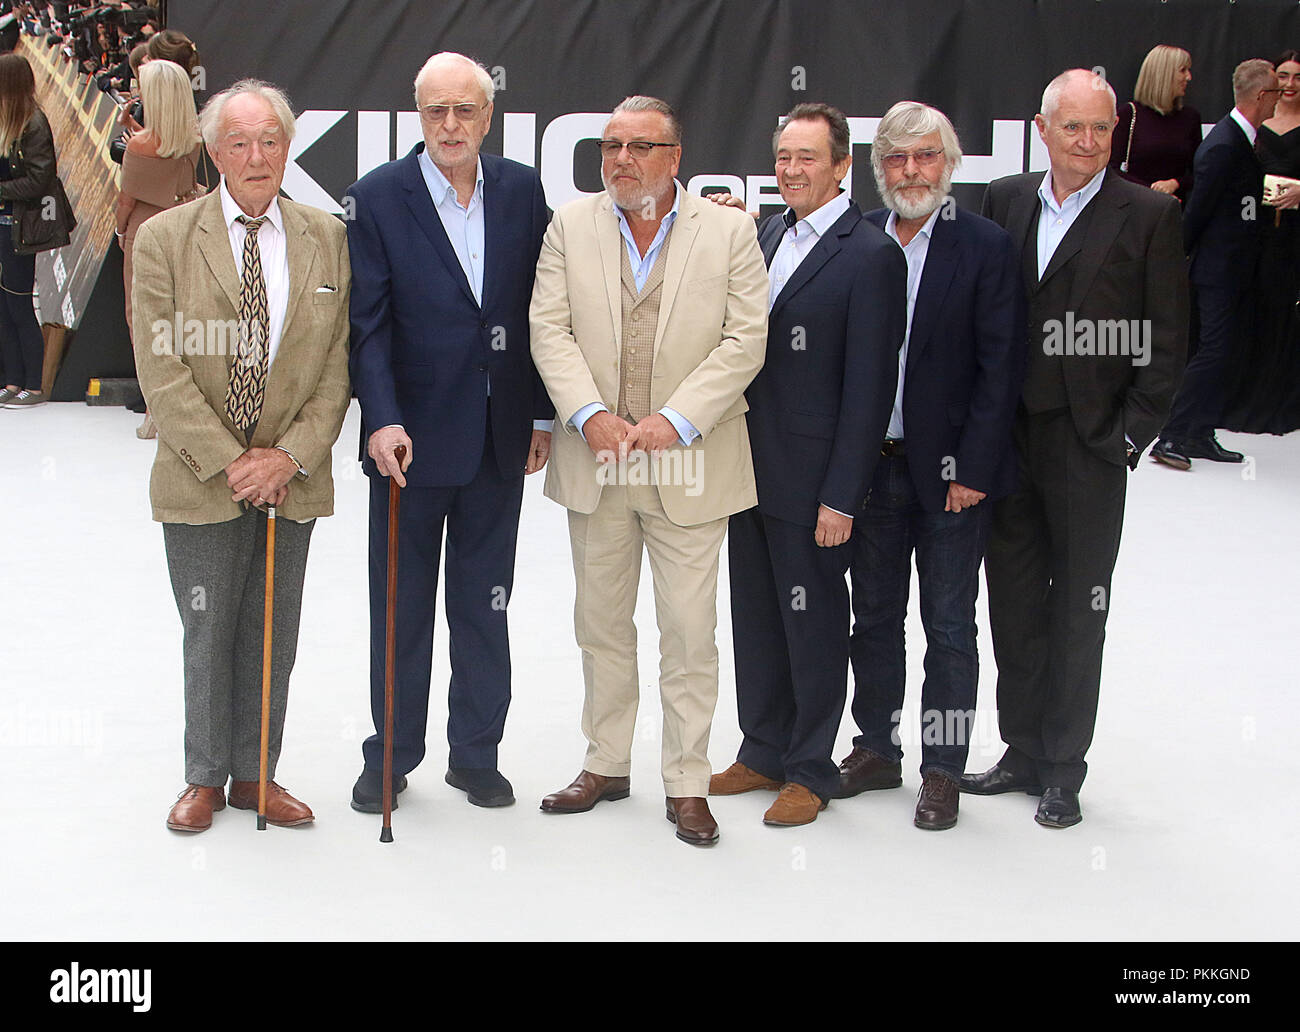 London, UK, Sep 12th 2018. Jim Broadbent, Michael Gambon, Sir Michael Caine, Ray Winstone, Sir Tom Courtenay and Paul Whitehouse attend the King of Thieves film premiere in London Stock Photo